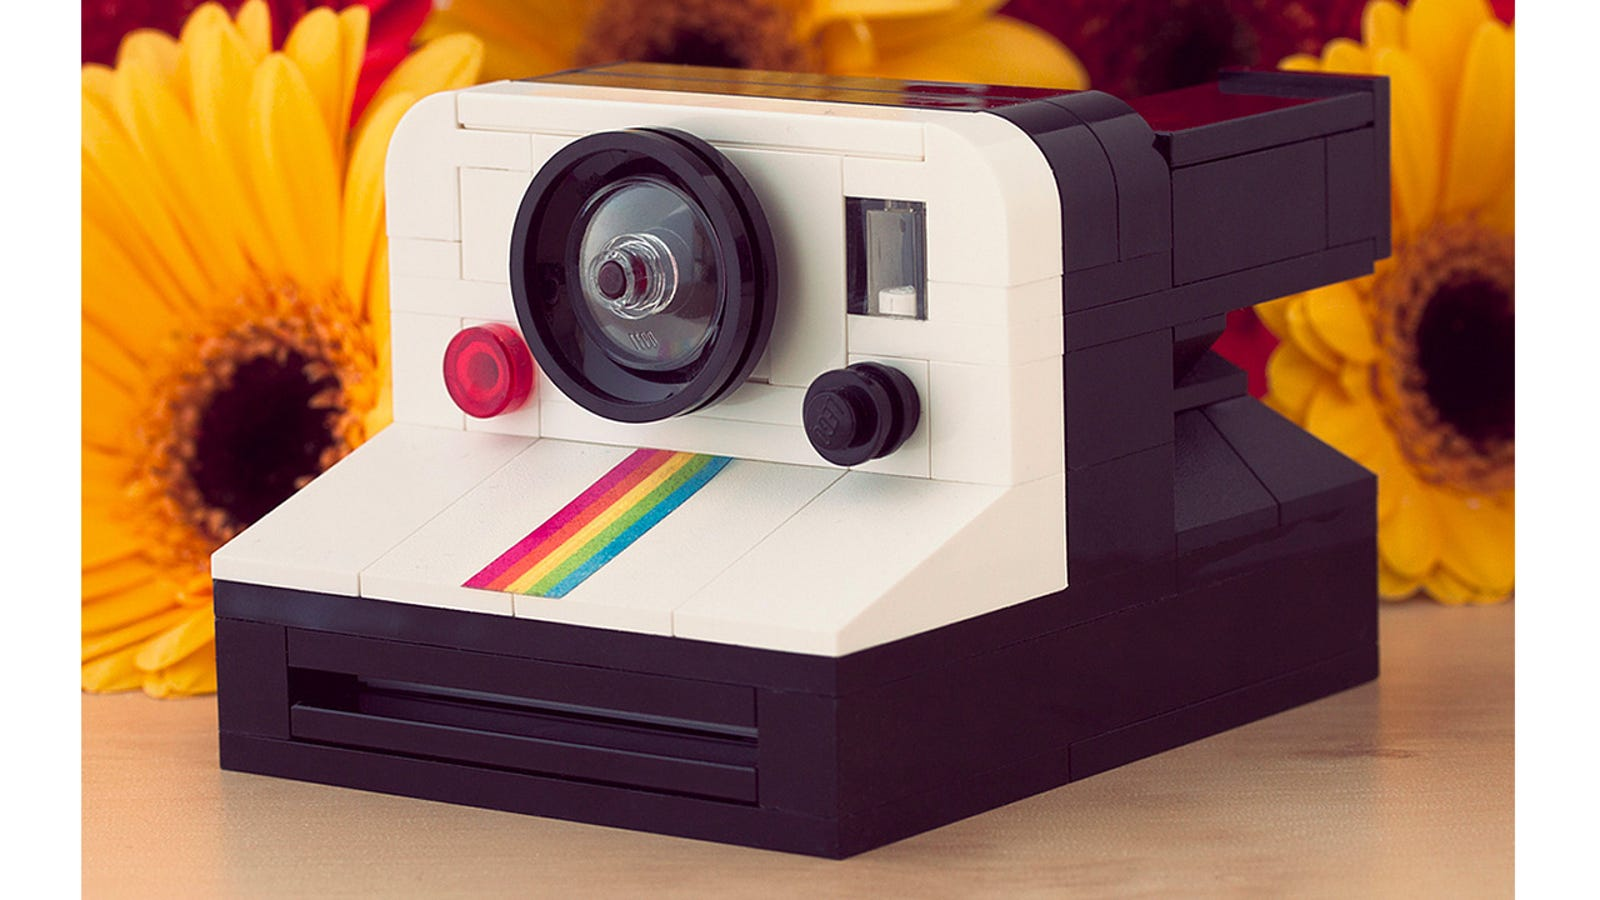 This Amazing Lego Instant Camera Even Pops Out Lego Polaroids